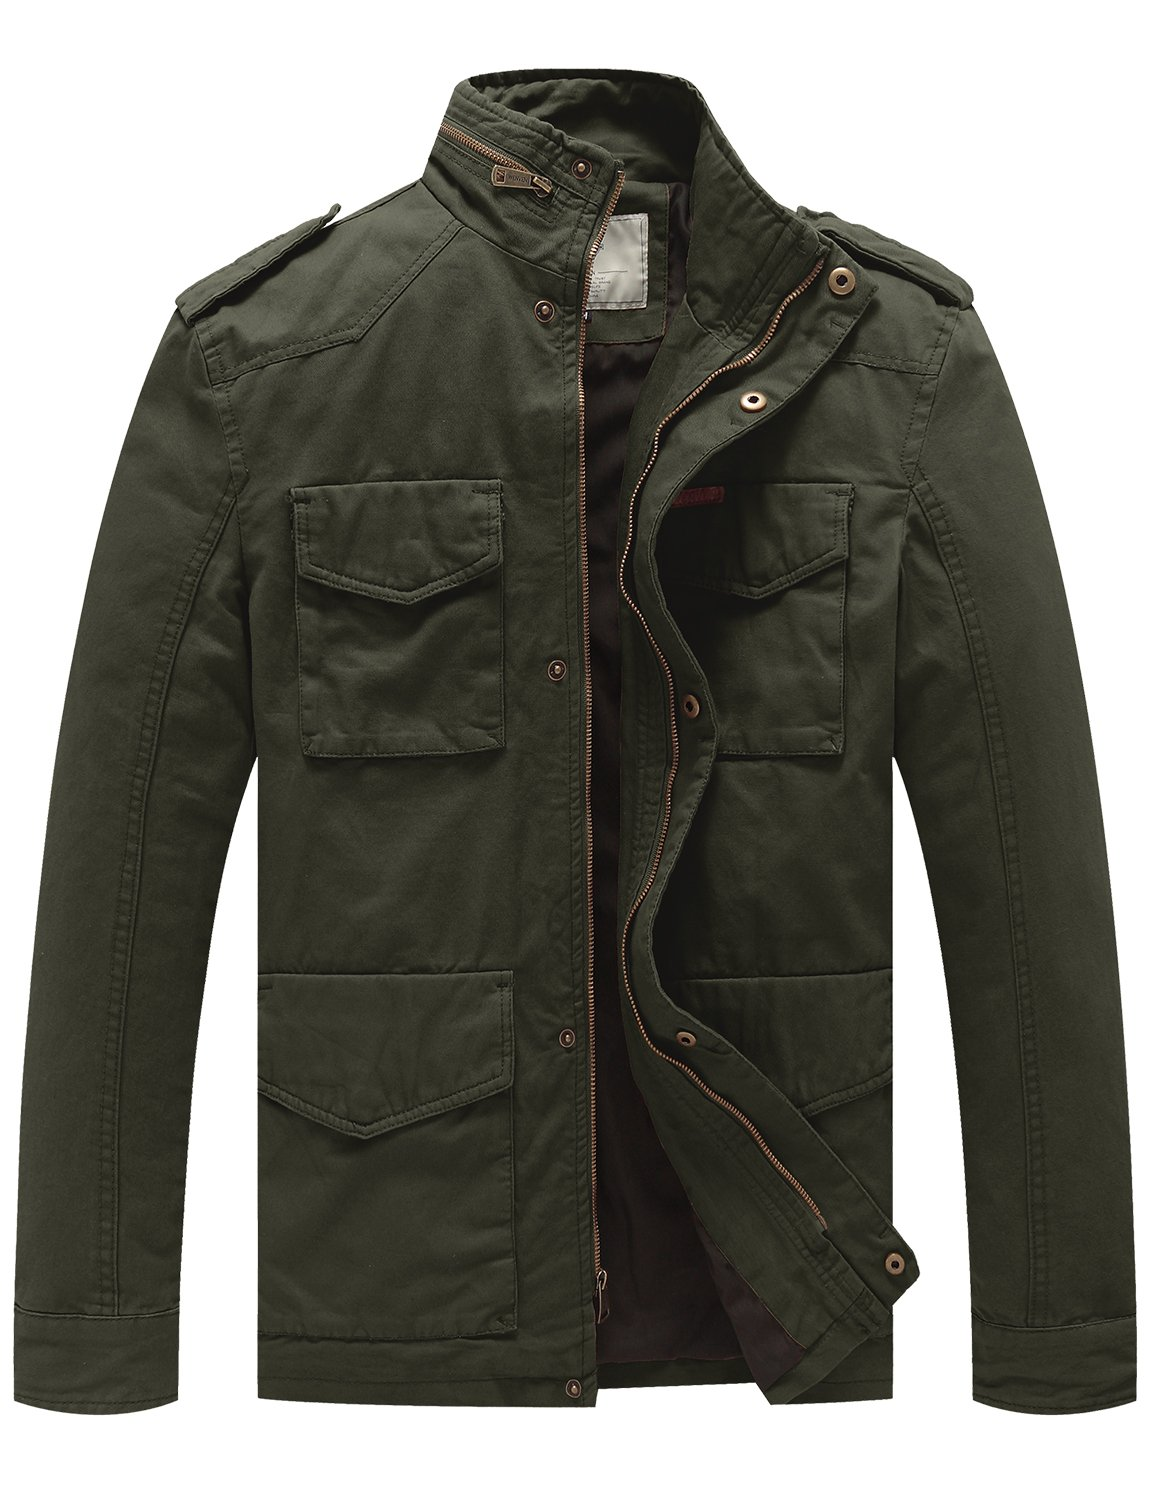 WenVen Men's Cotton Military Stand Collar Field Jacket (Army Green, Large) by WenVen